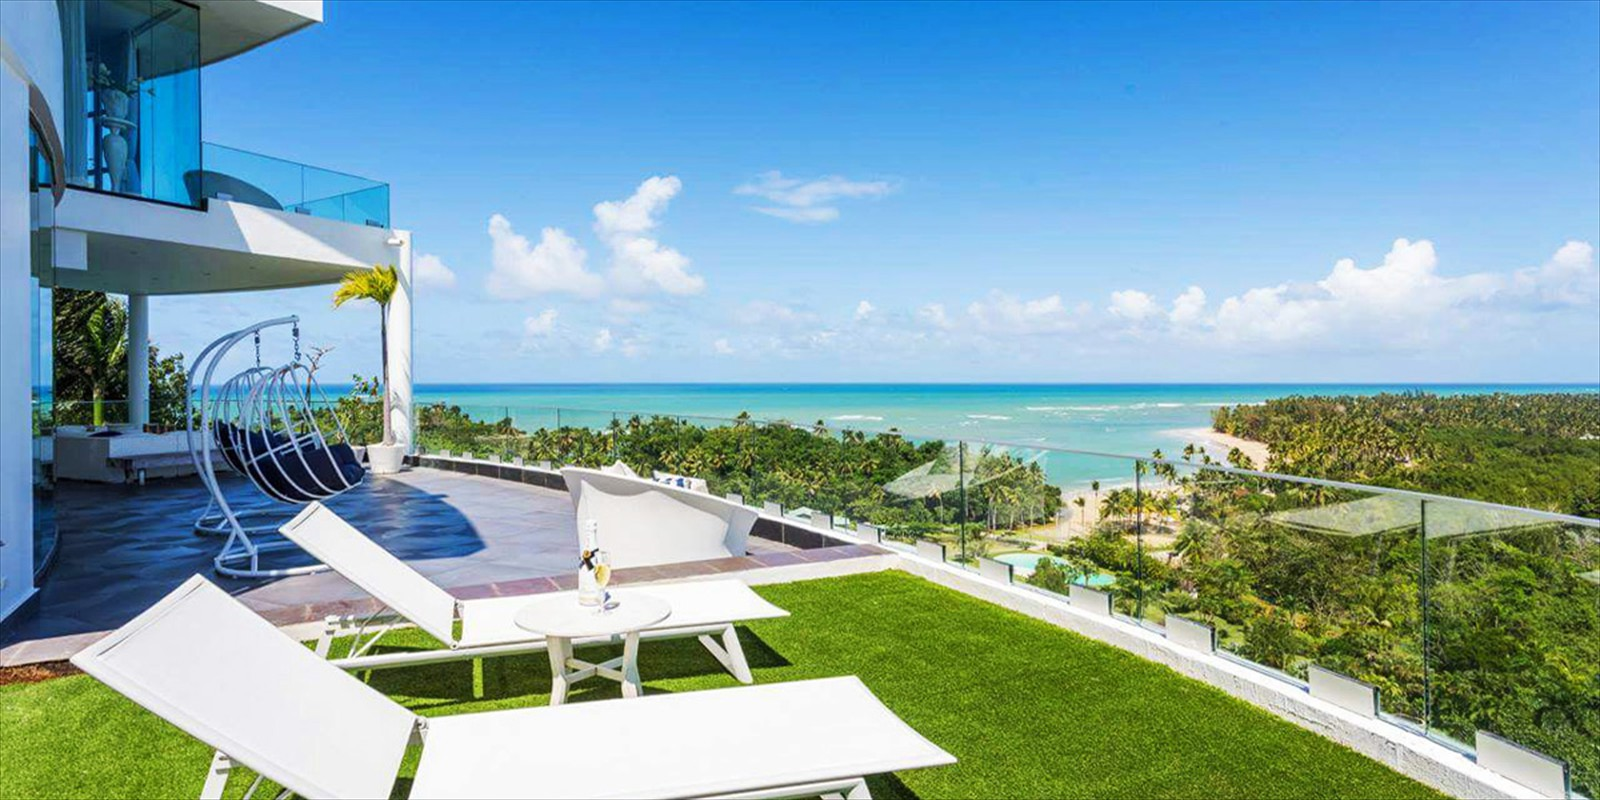 Homes for Sale in Las Terrenas Dominican Republic.